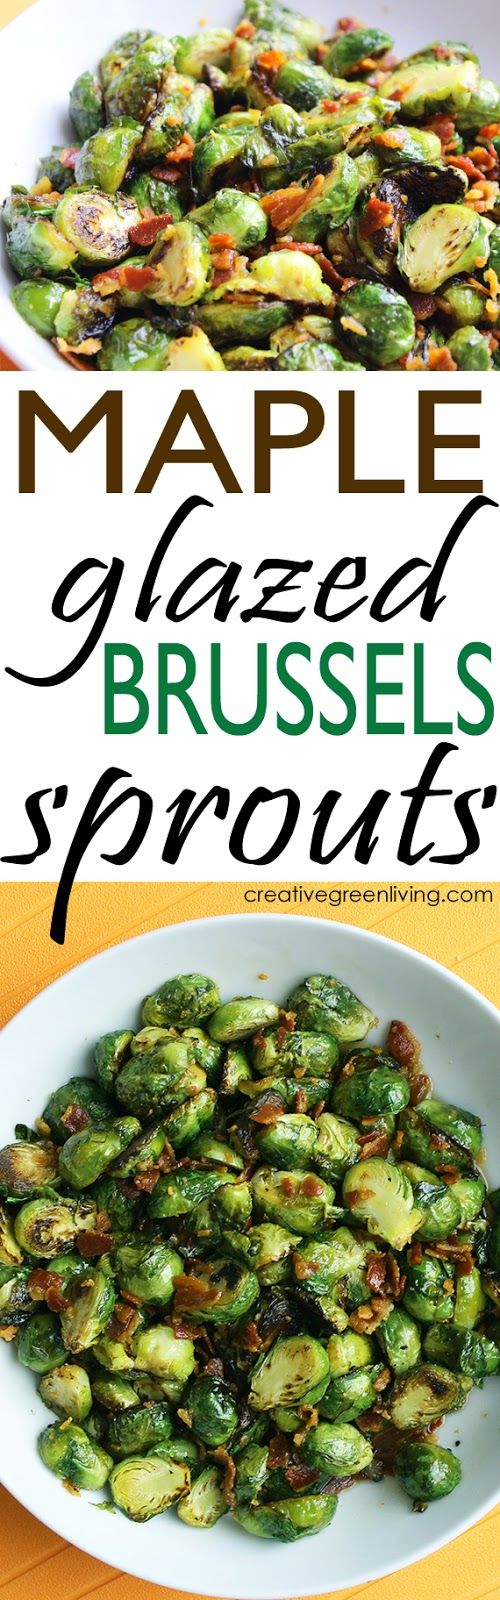 This is the best recipe for maple glazed roasted Brussels sprouts with bacon. First they are sauteed and then finished by being baked with the glaze - and of course bacon makes everything taste better!